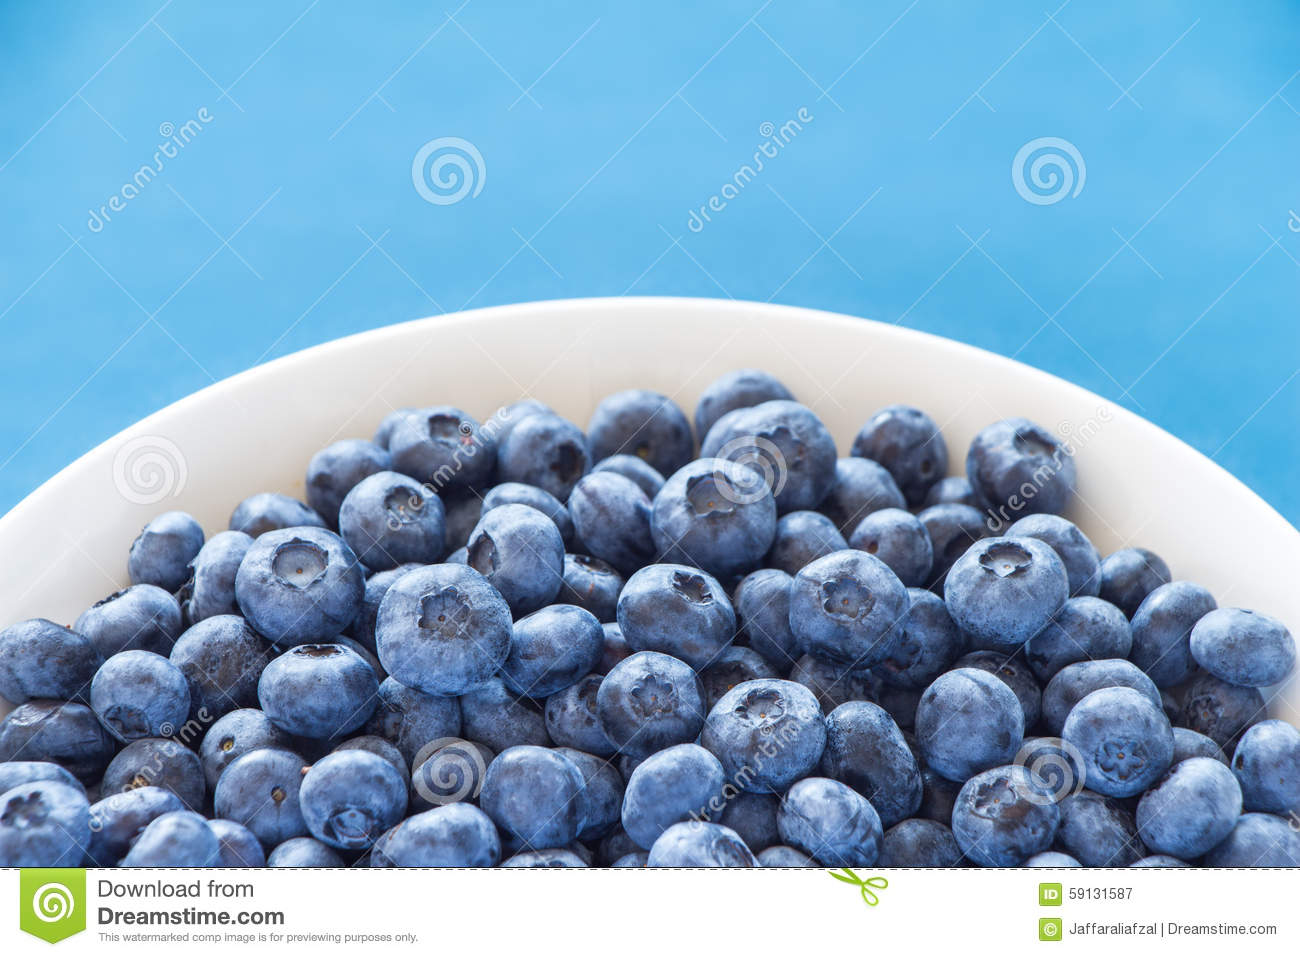 Blueberries In White Bowl On Colorful Blue Backround Stock ...